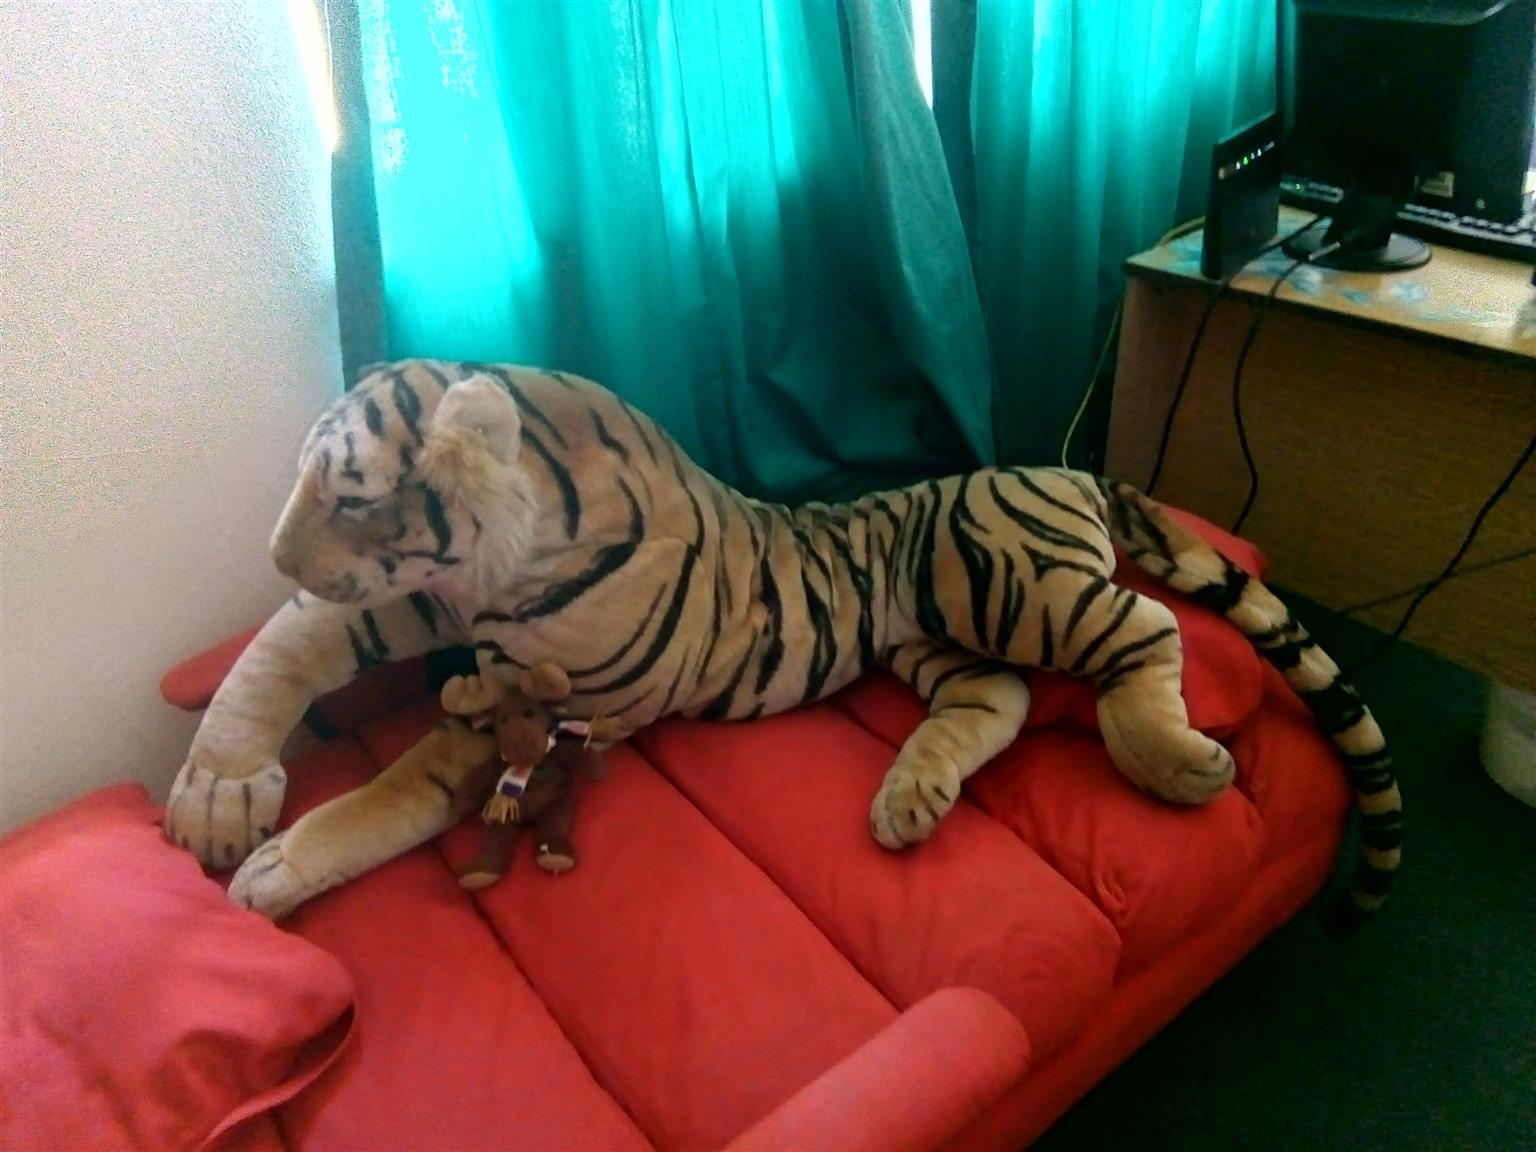 Life sized stuffed tiger